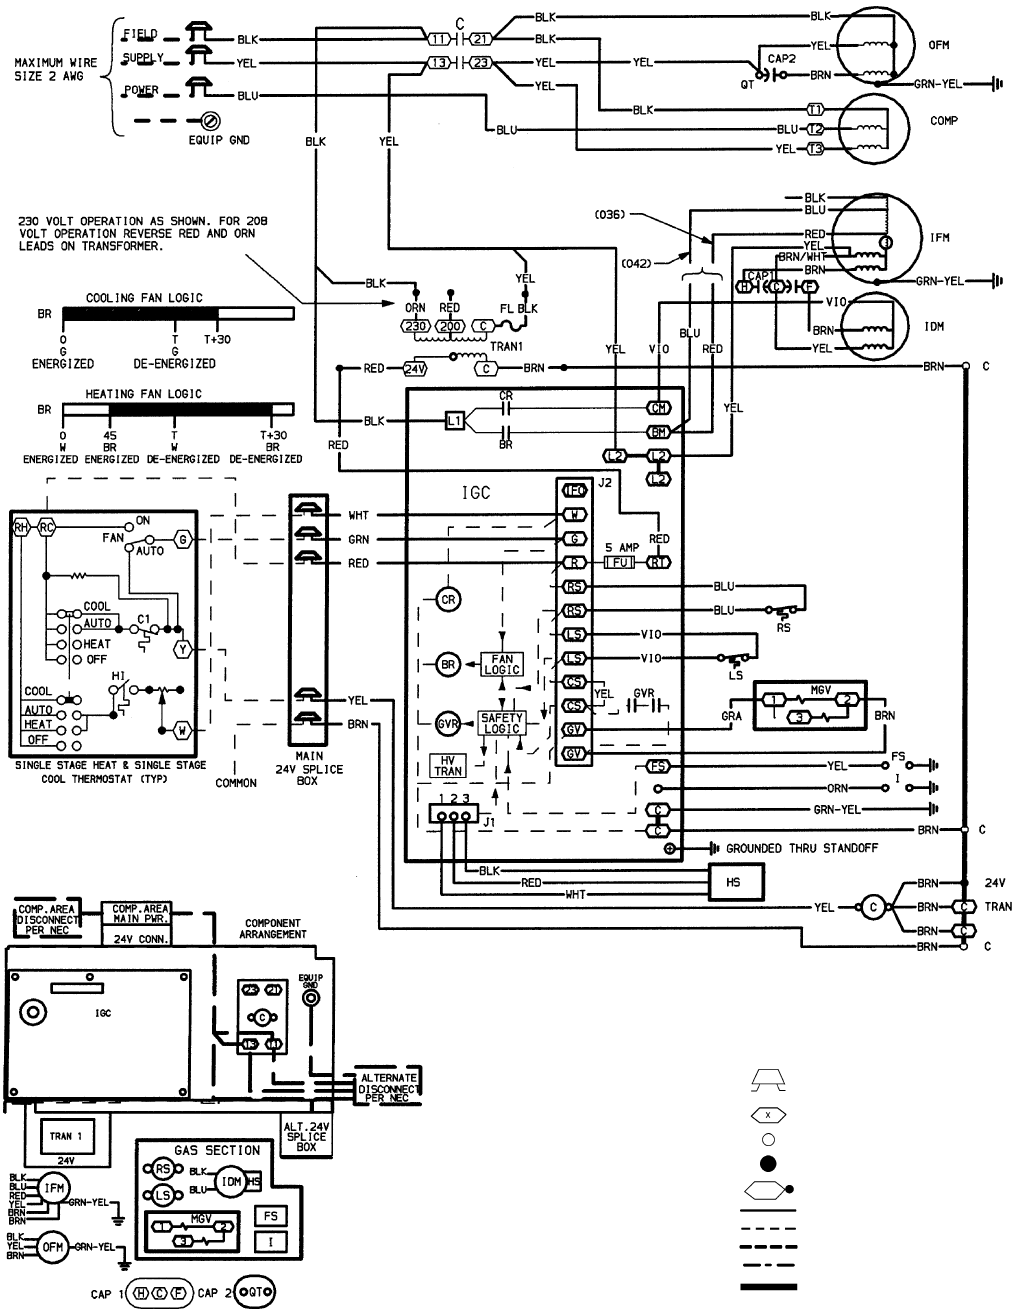 12f5562c 4eff 4259 8133 9d7867e60ebe bg20 page 32 of bryant gas heater 589a user guide manualsonline com Basic Electrical Wiring Diagrams at virtualis.co